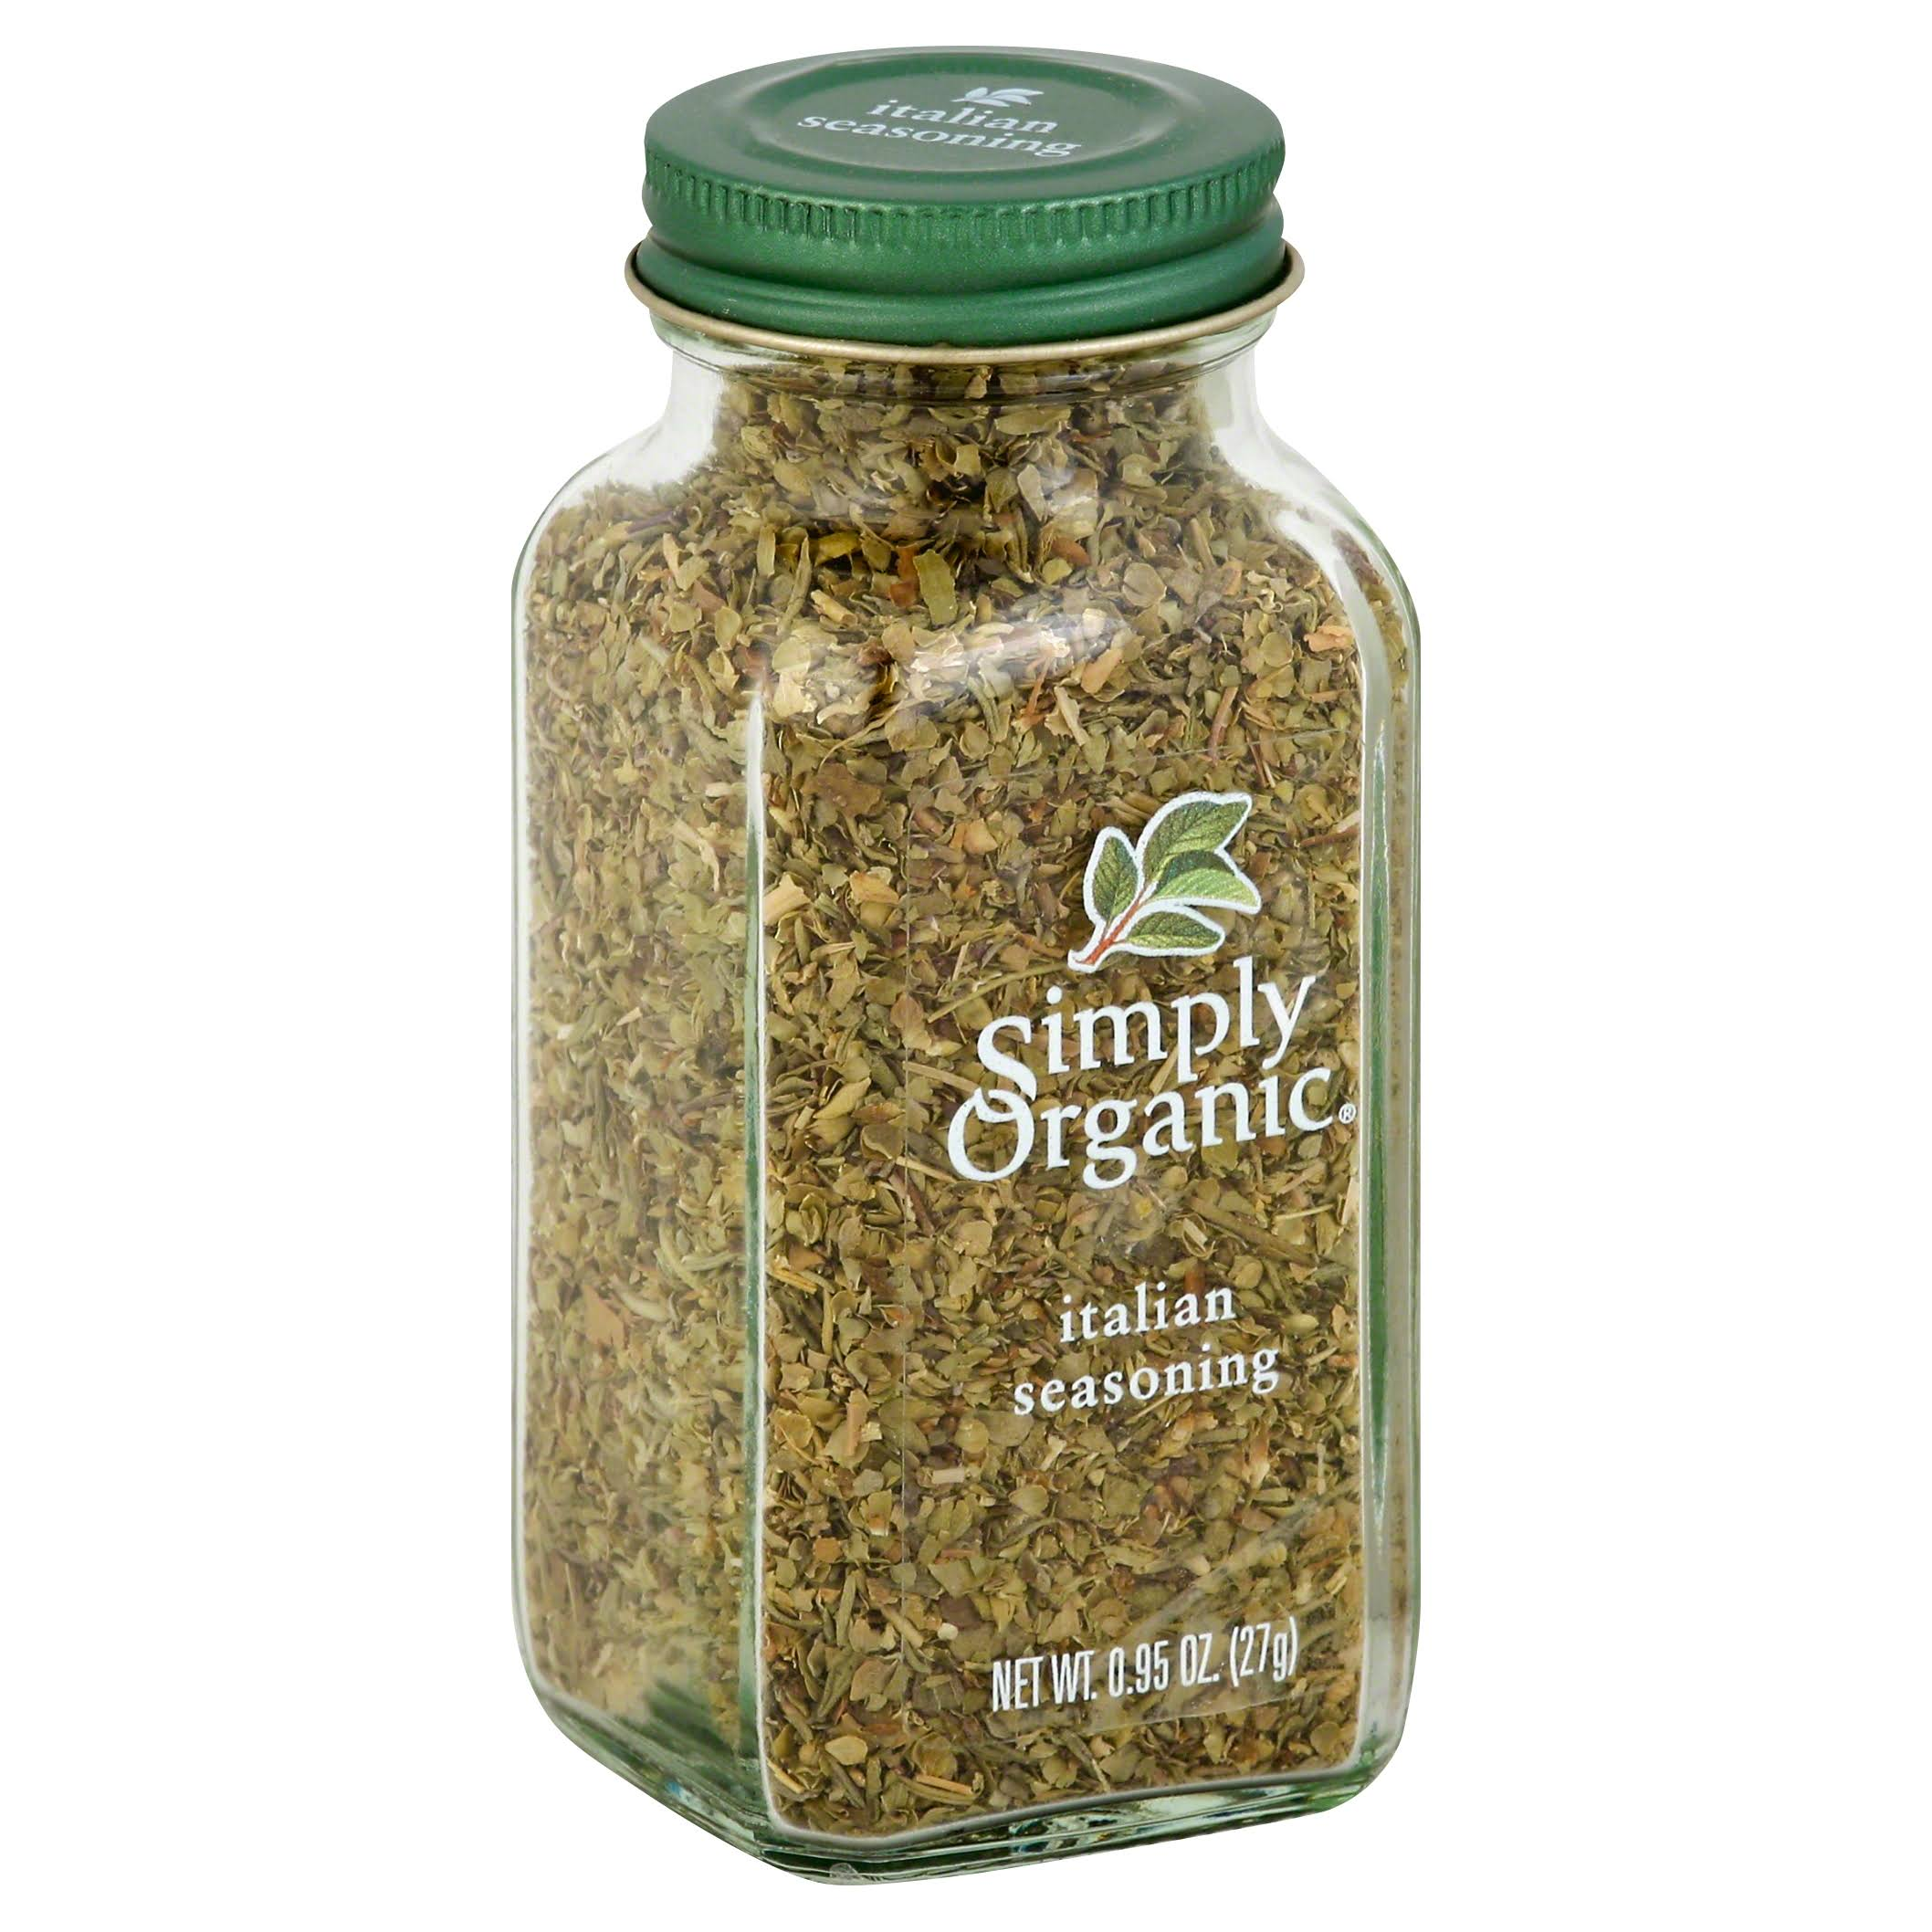 Simply Organic Italian Seasoning - 0.95oz